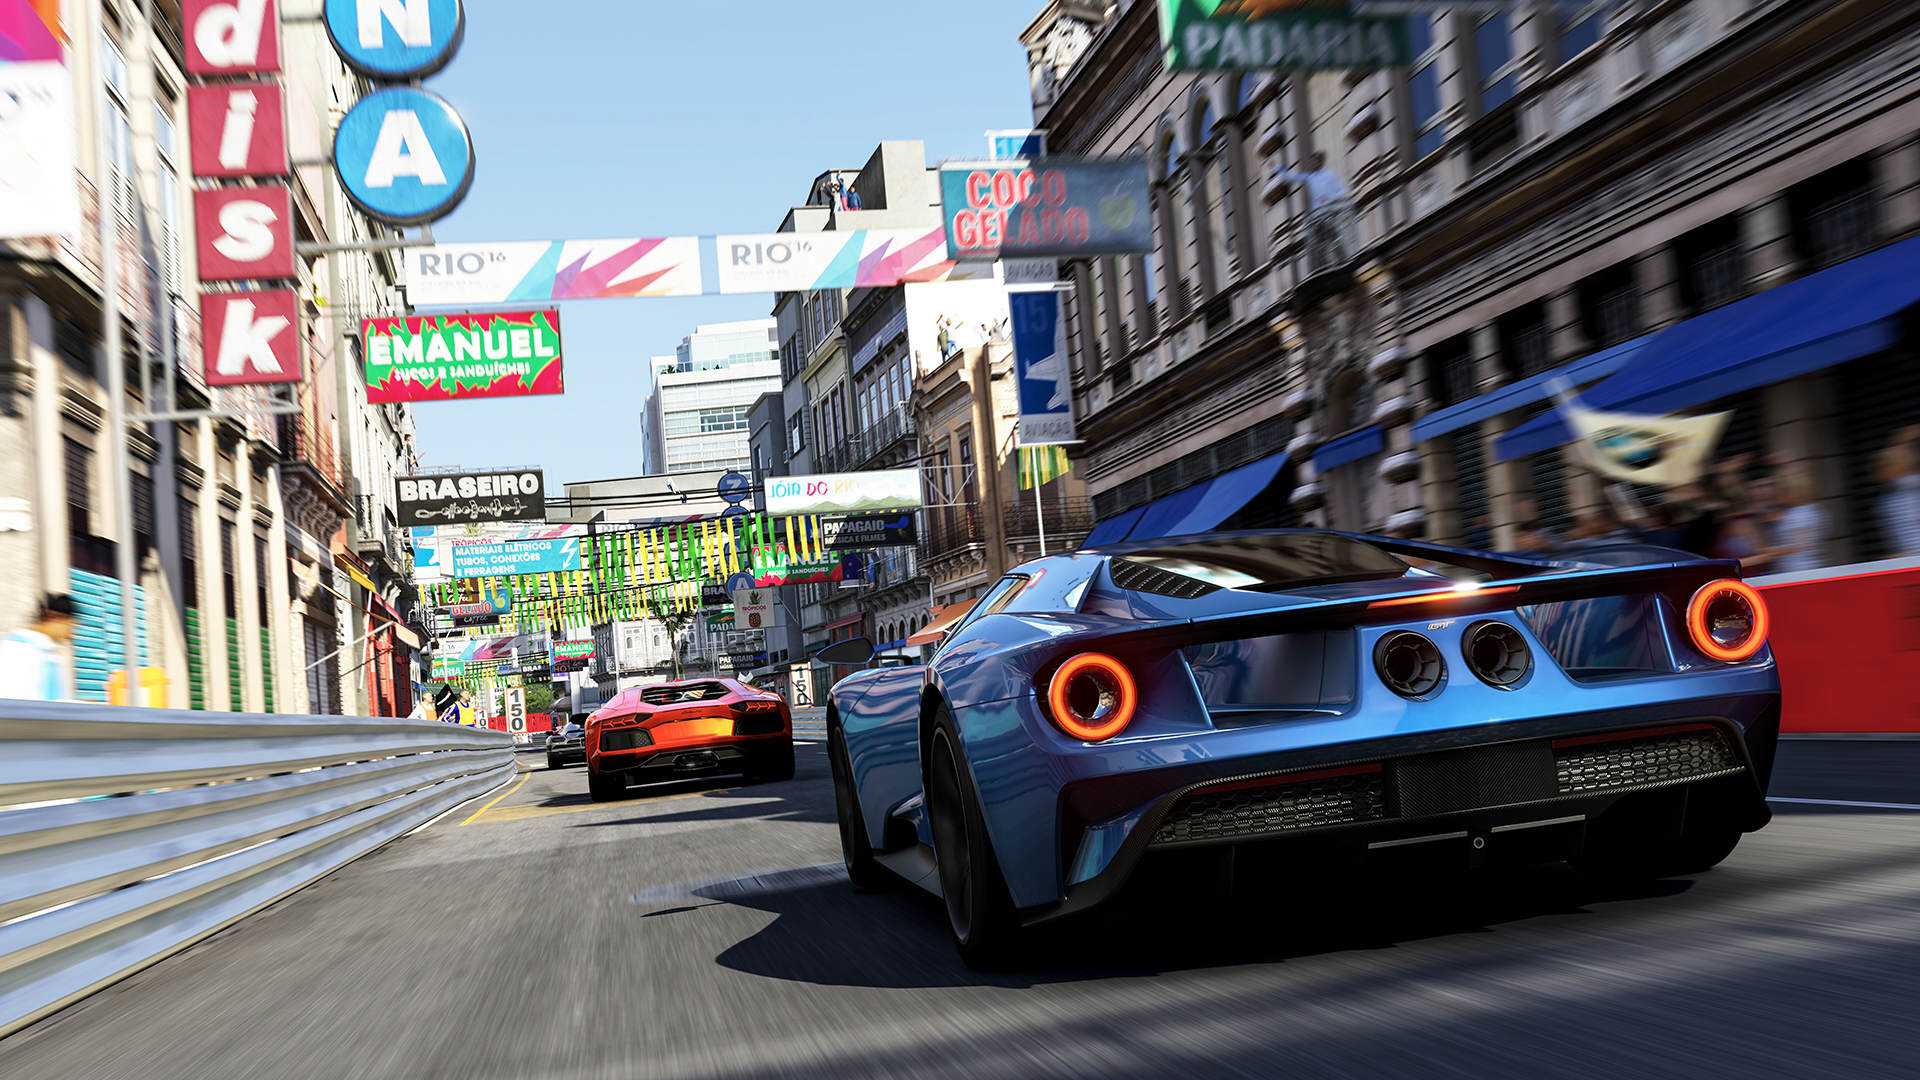 f3fed74c 28b3 4ffa 8c6b 6e46bd6fe106 Forza 6s Upcoming Expansion Details Have Leaked On Amazon